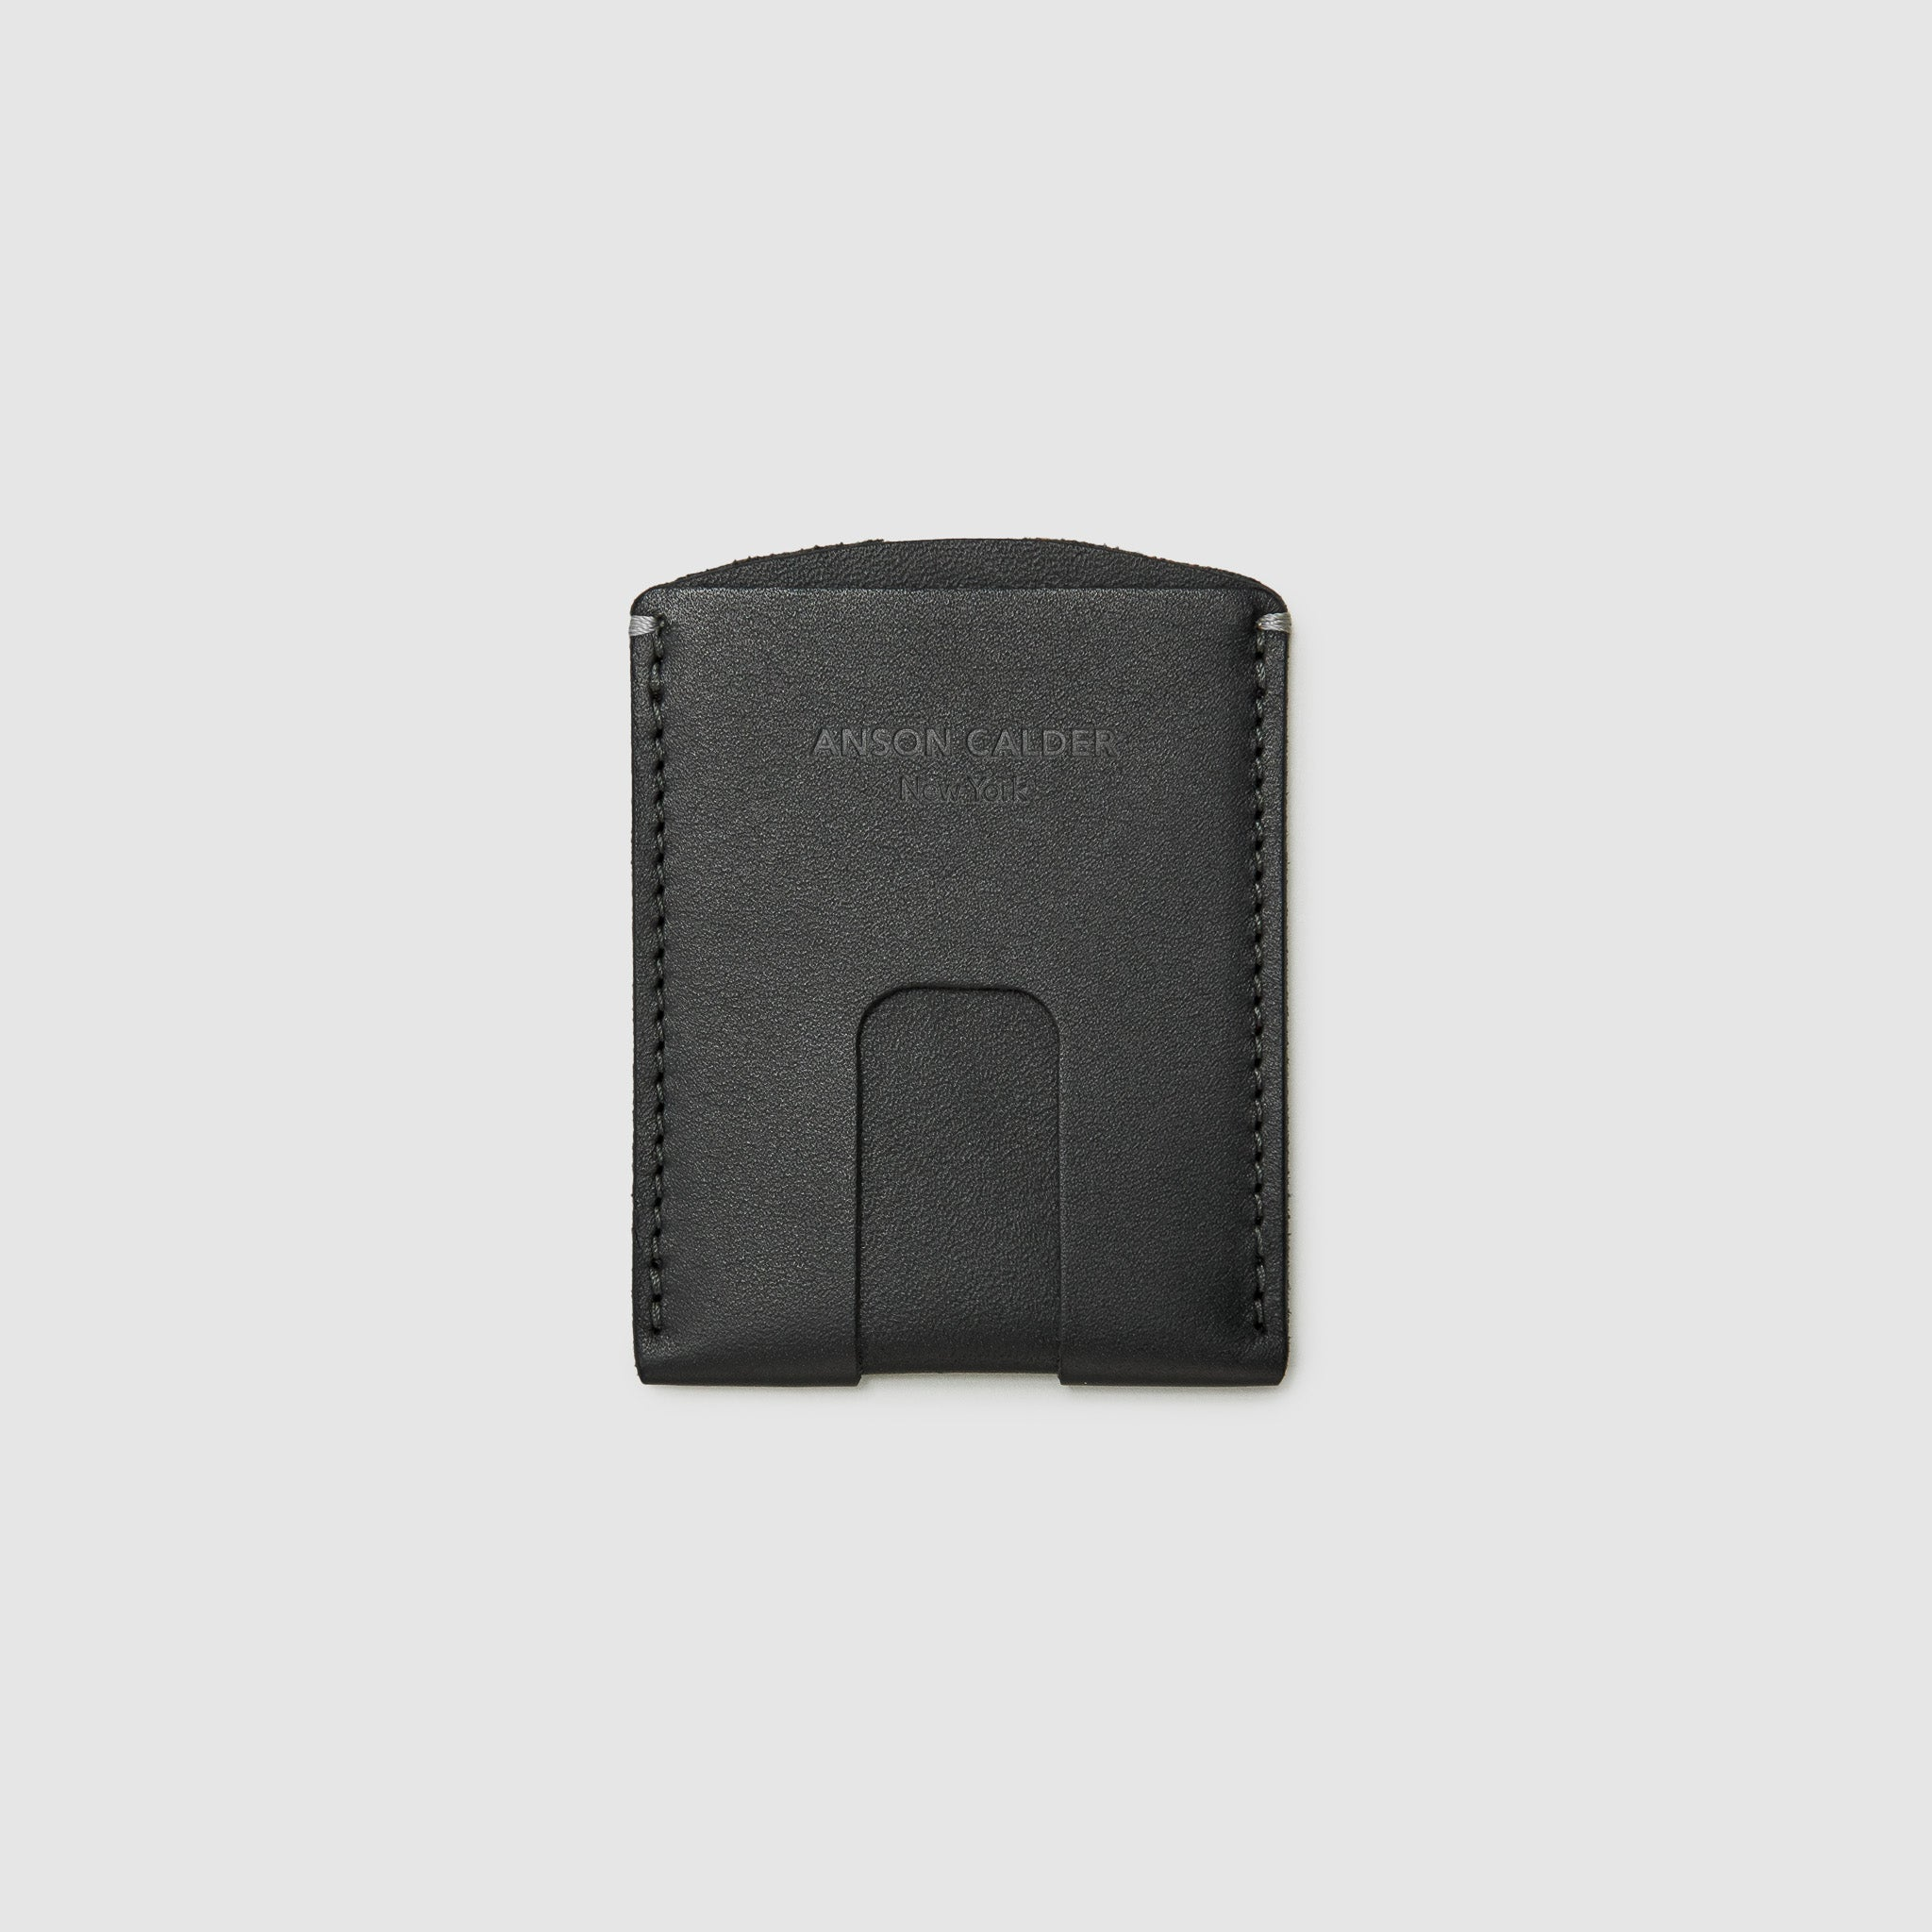 Anson Calder Card Holder Wallet french calfskin leather _black